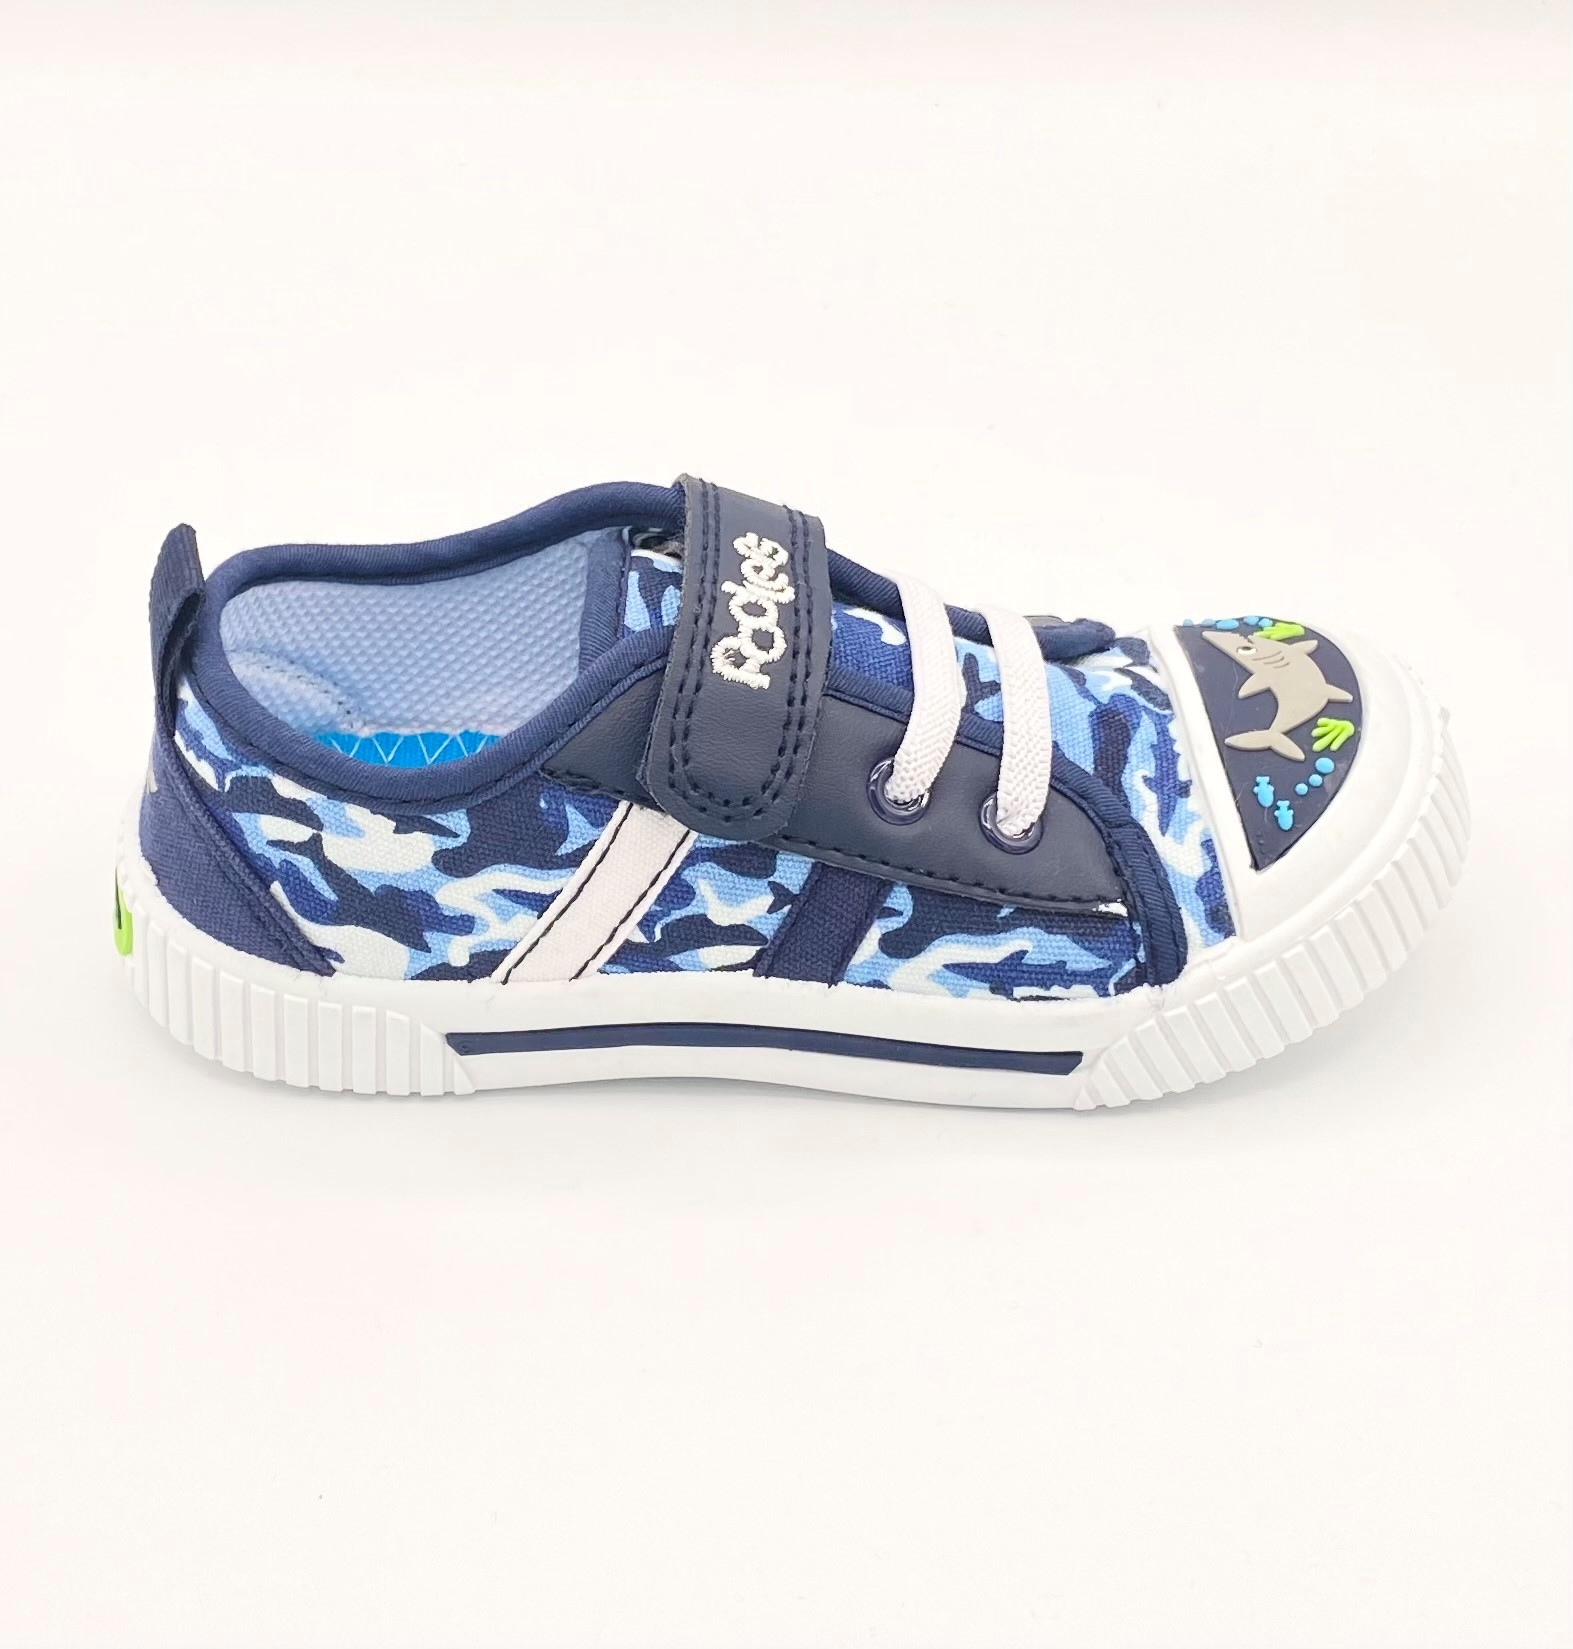 PODLERS BOYS 'Reez' Canvas Trainers